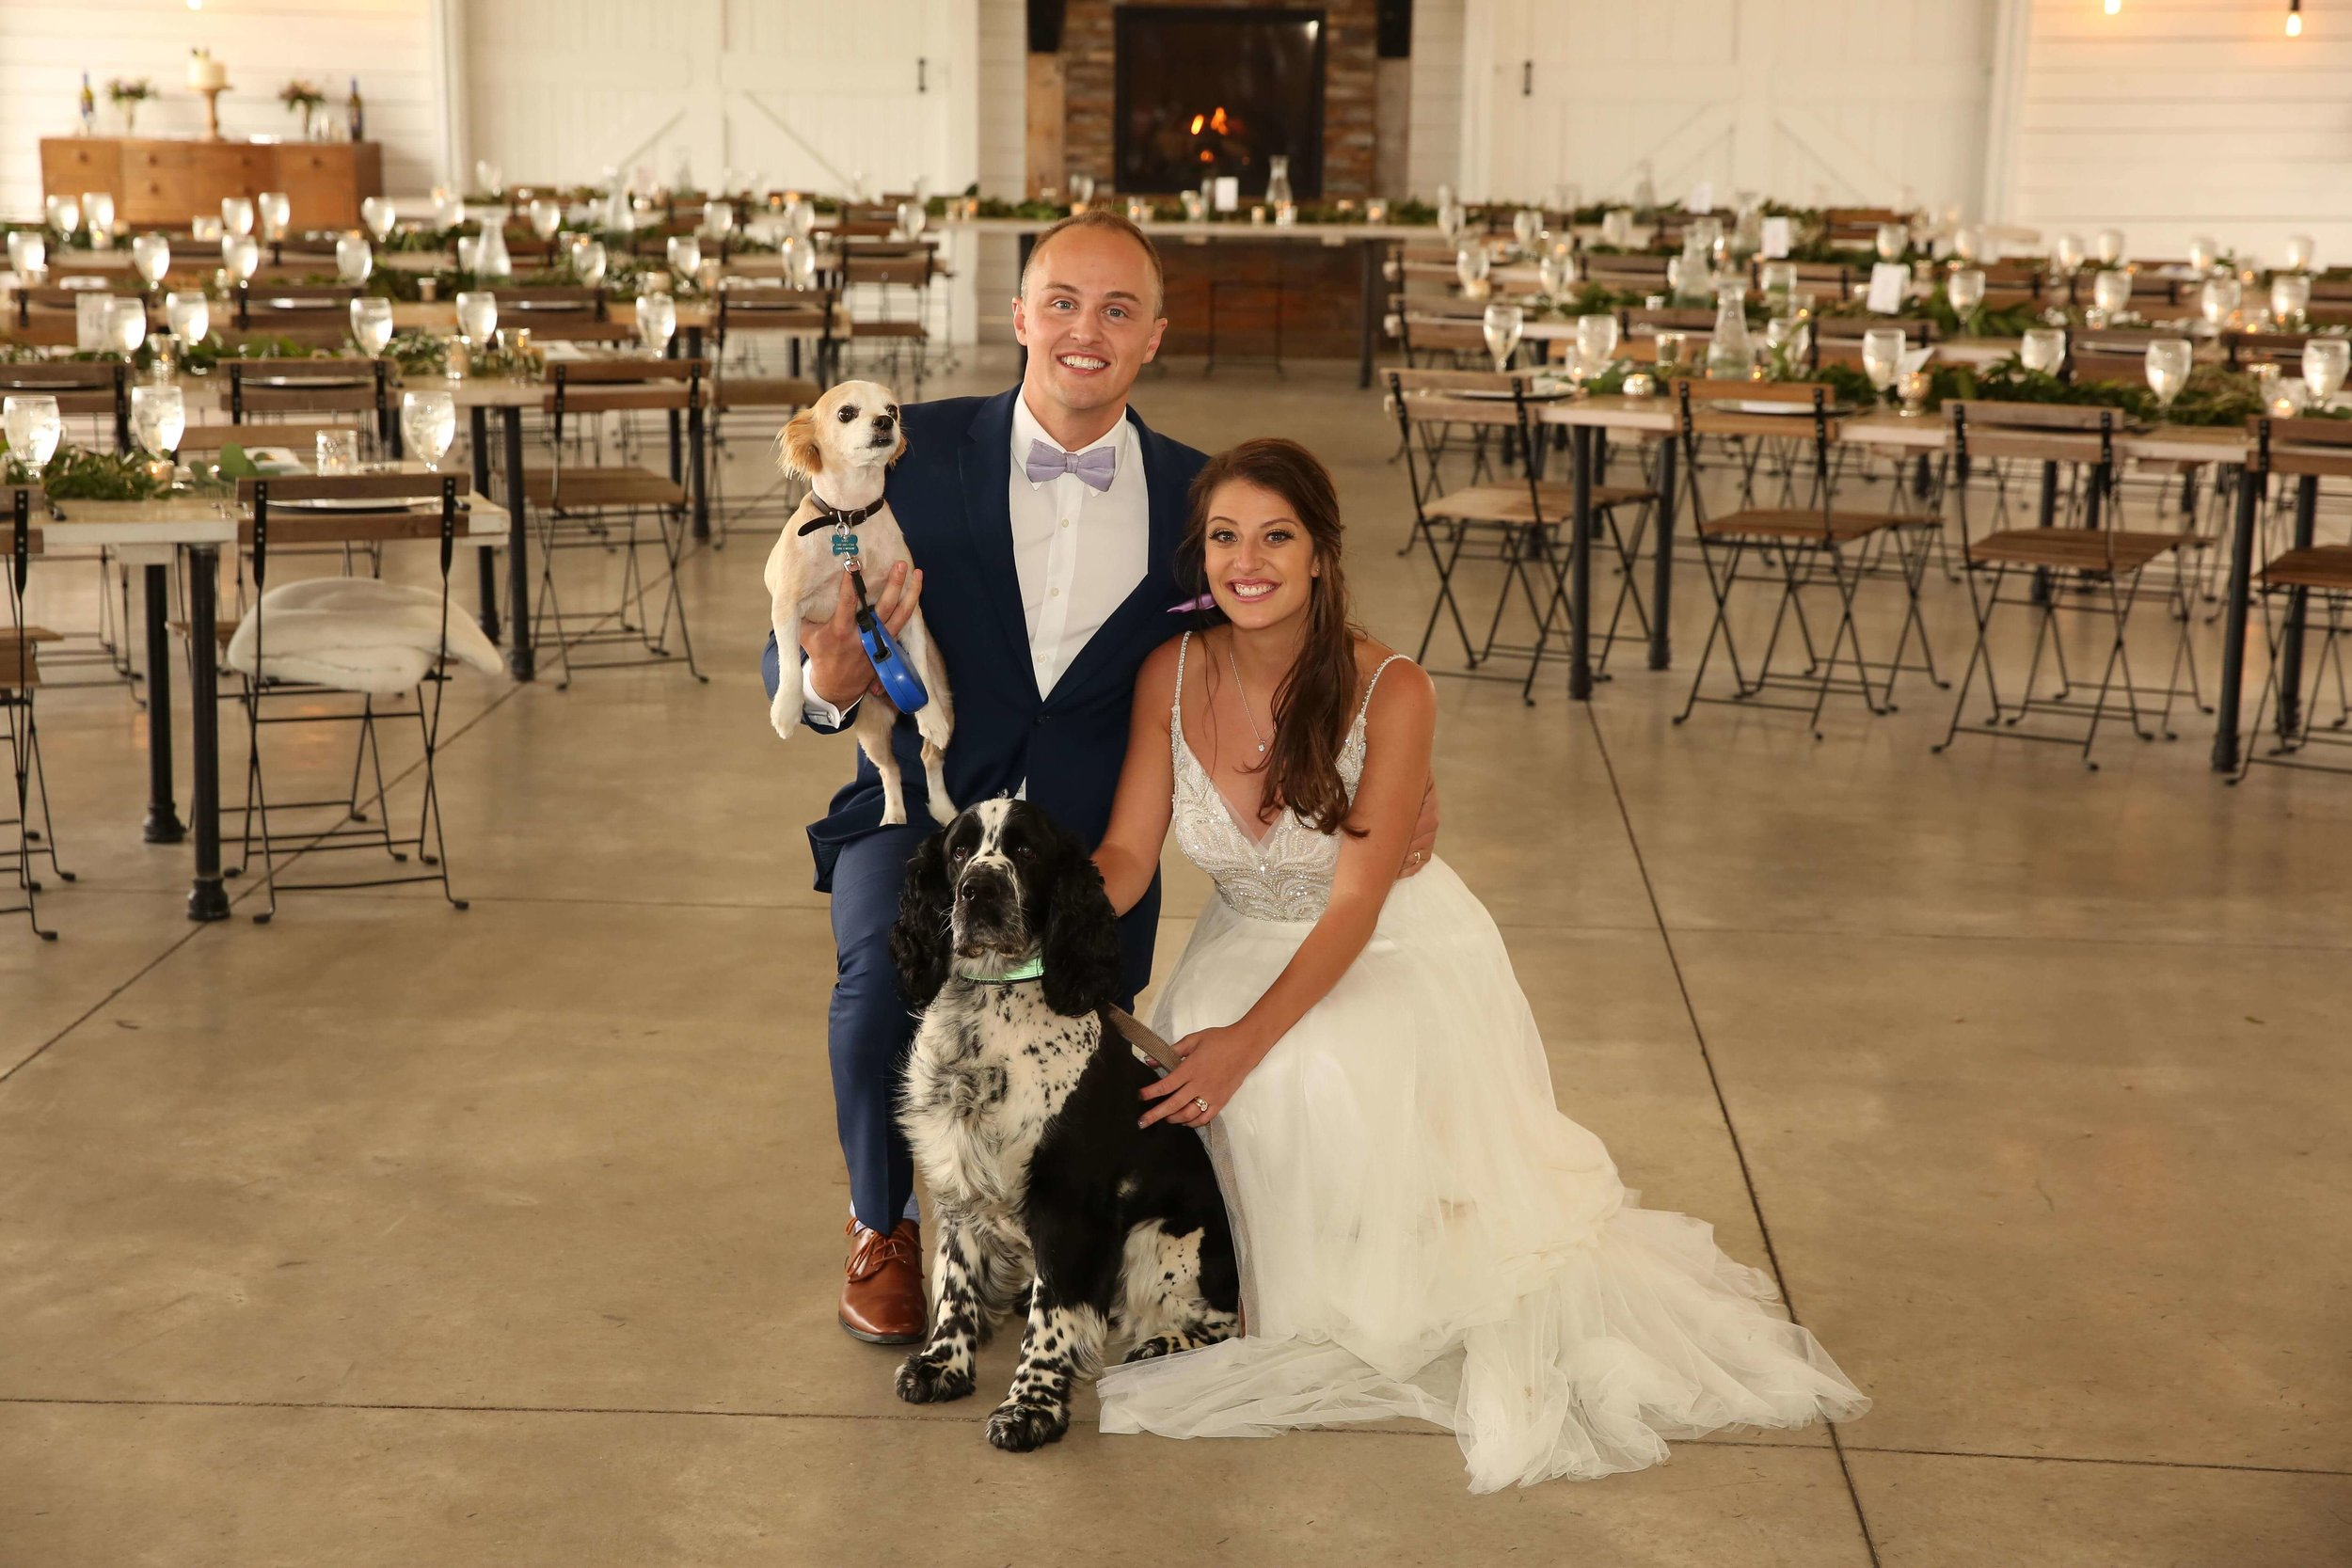 family photo with fur babies | Lauren + Adam - SIxpence Events and Planning - Legacy Hill Farm - Unique Touch Photography.jpg